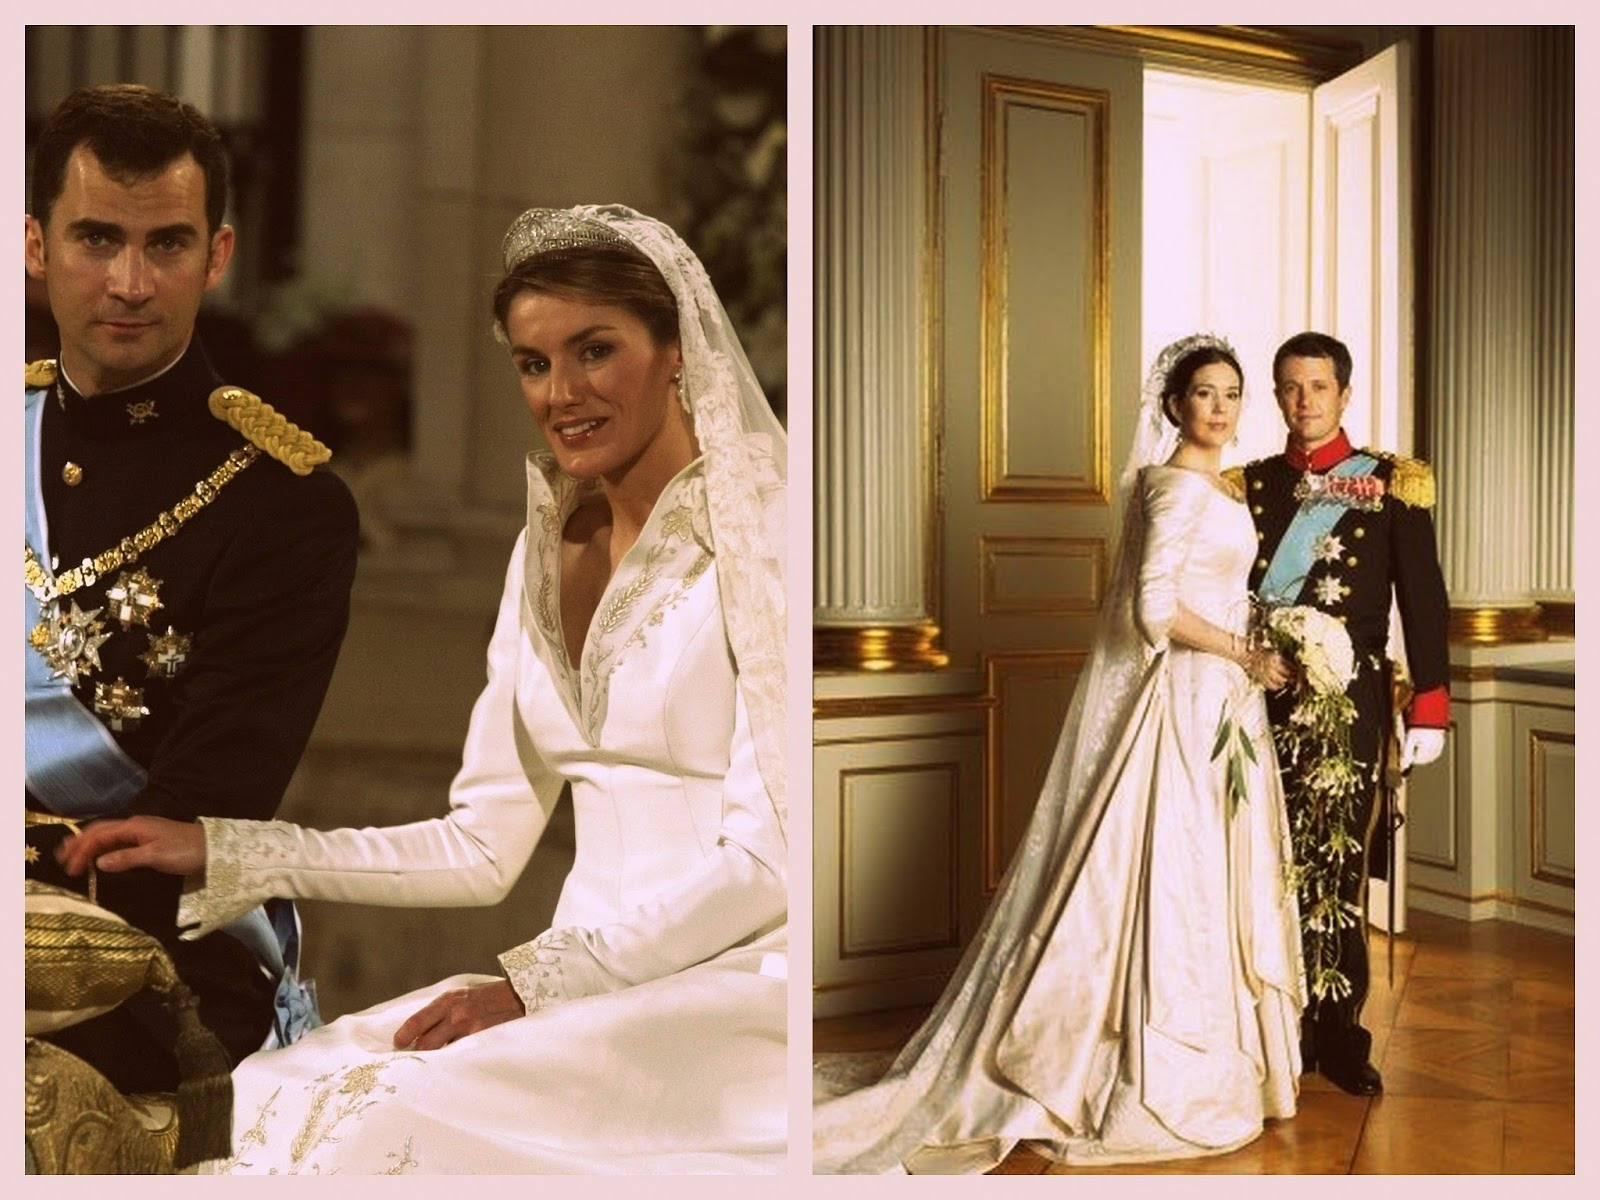 Queens Of England Mary And Letizia Royal Wedding Throwback